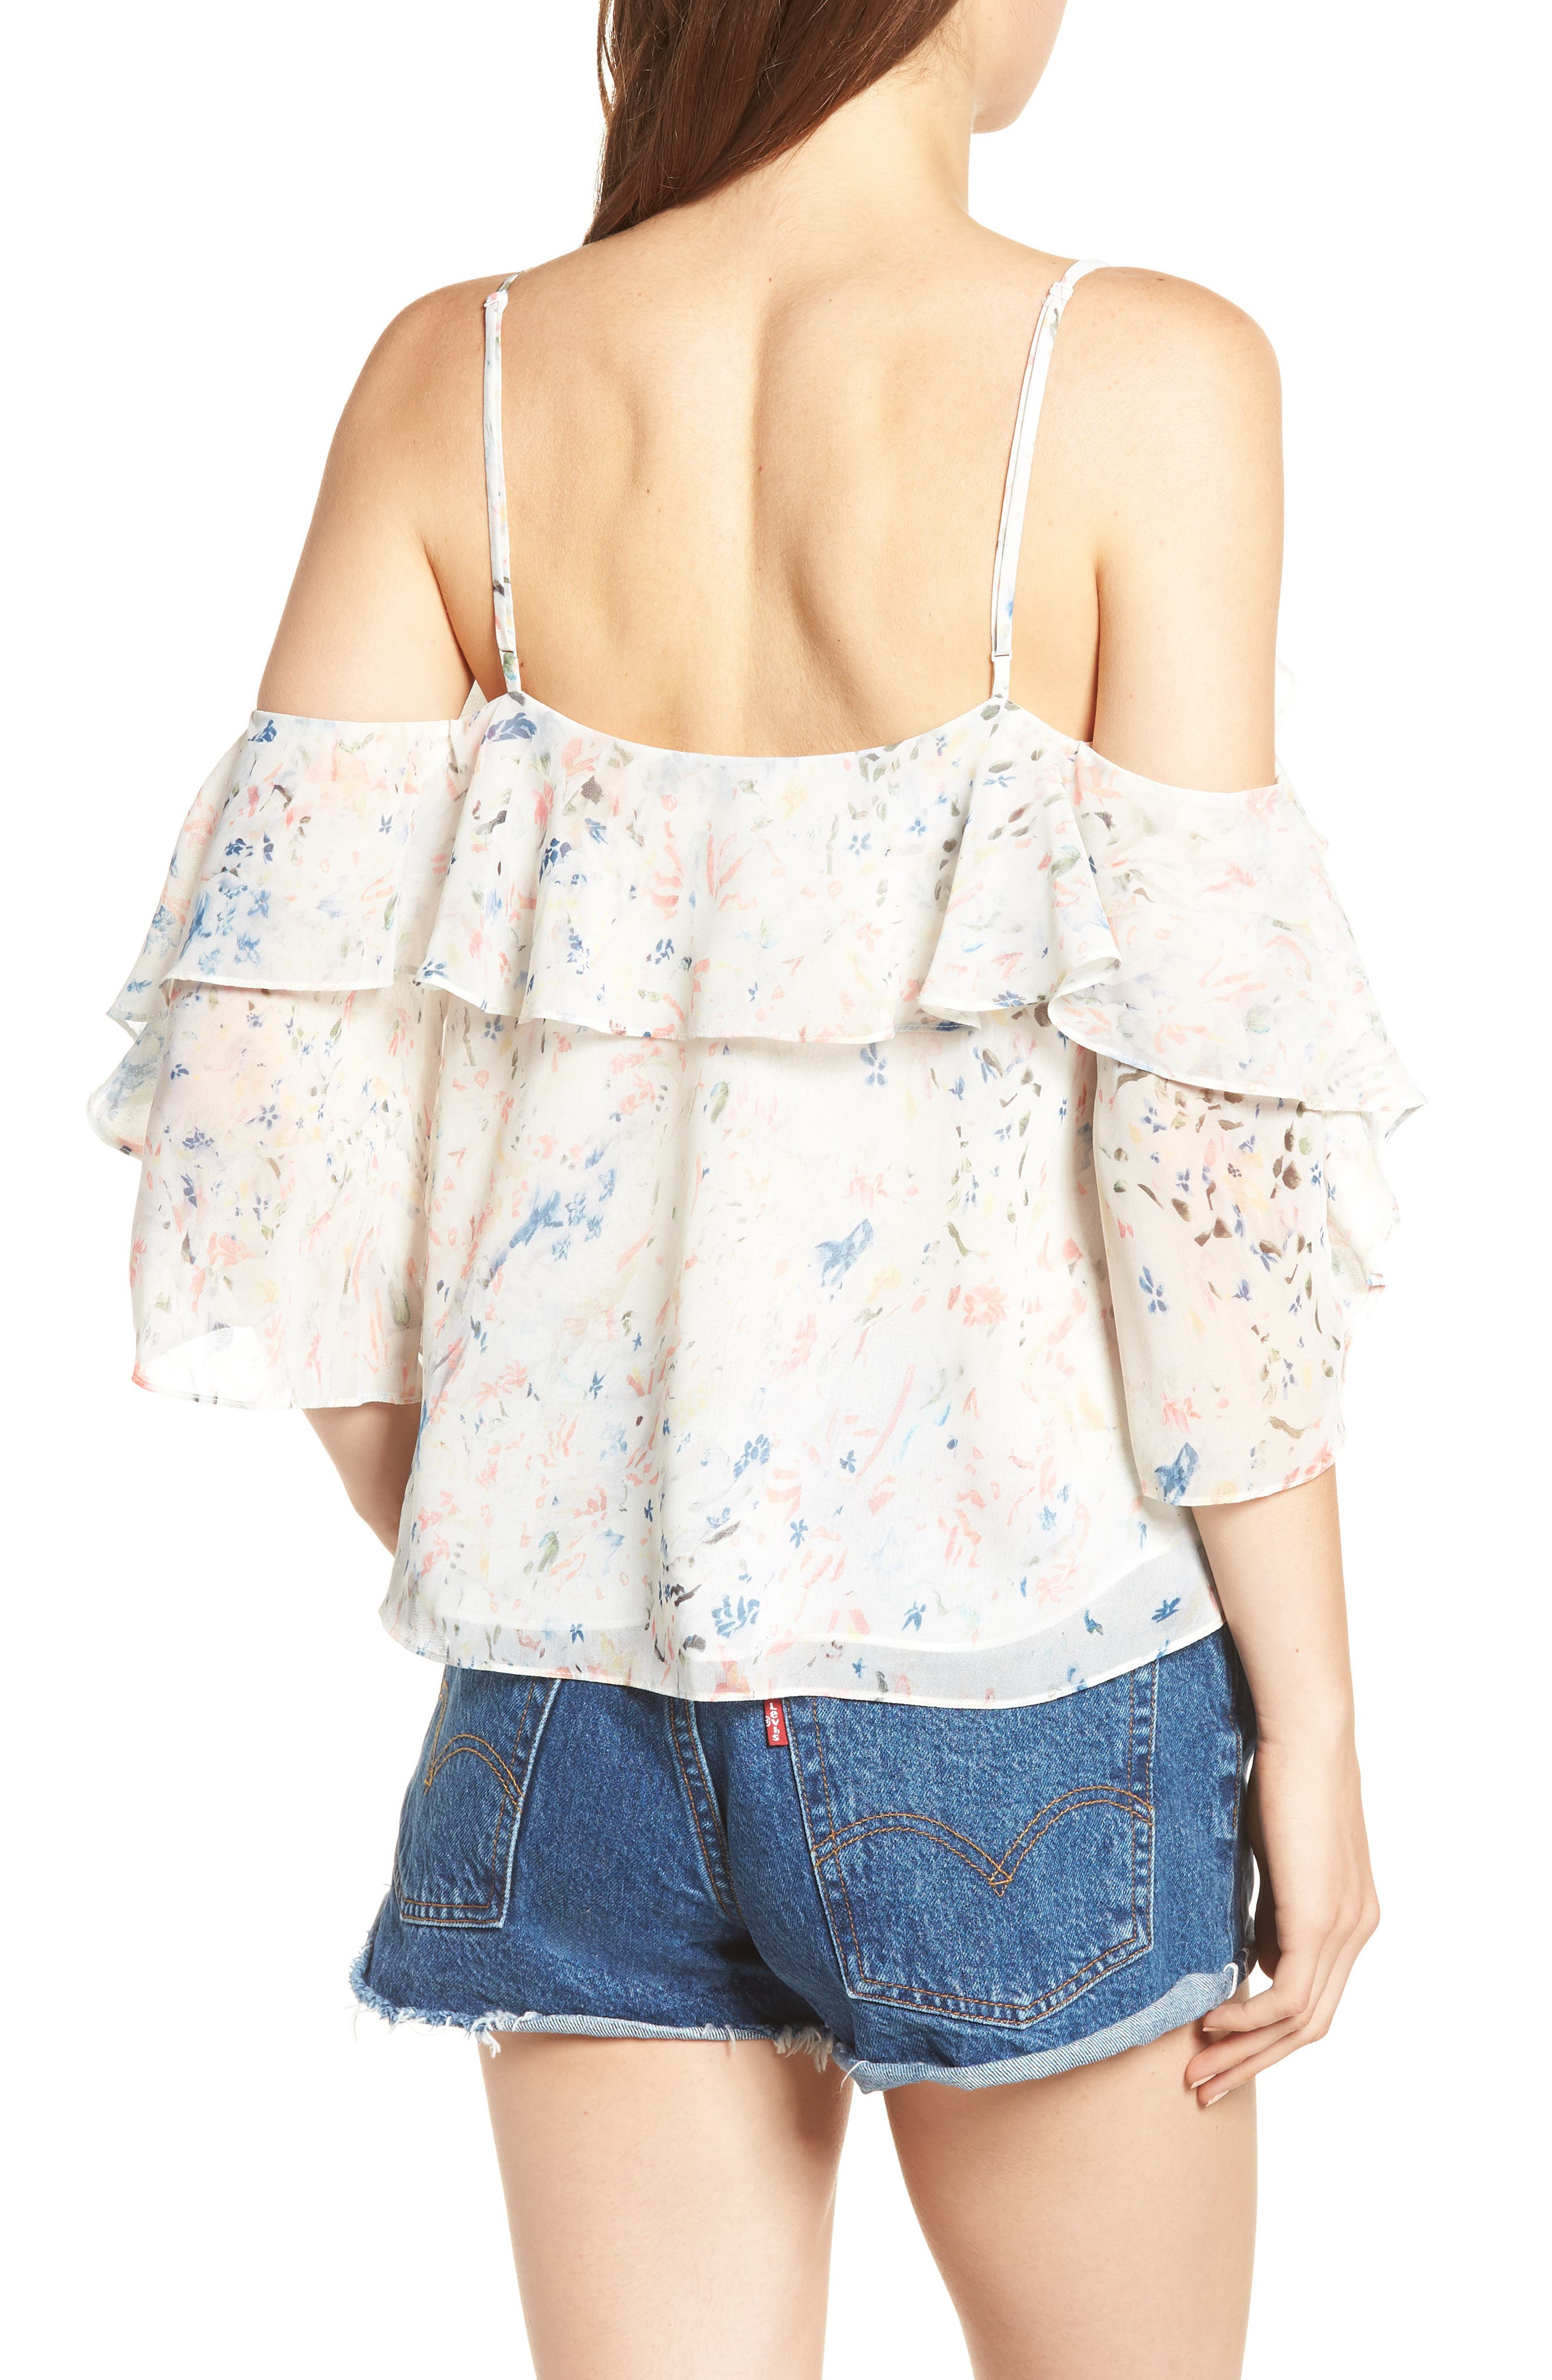 Jasmine Juni Top,                             Alternate thumbnail 2, color,                             Chalk White